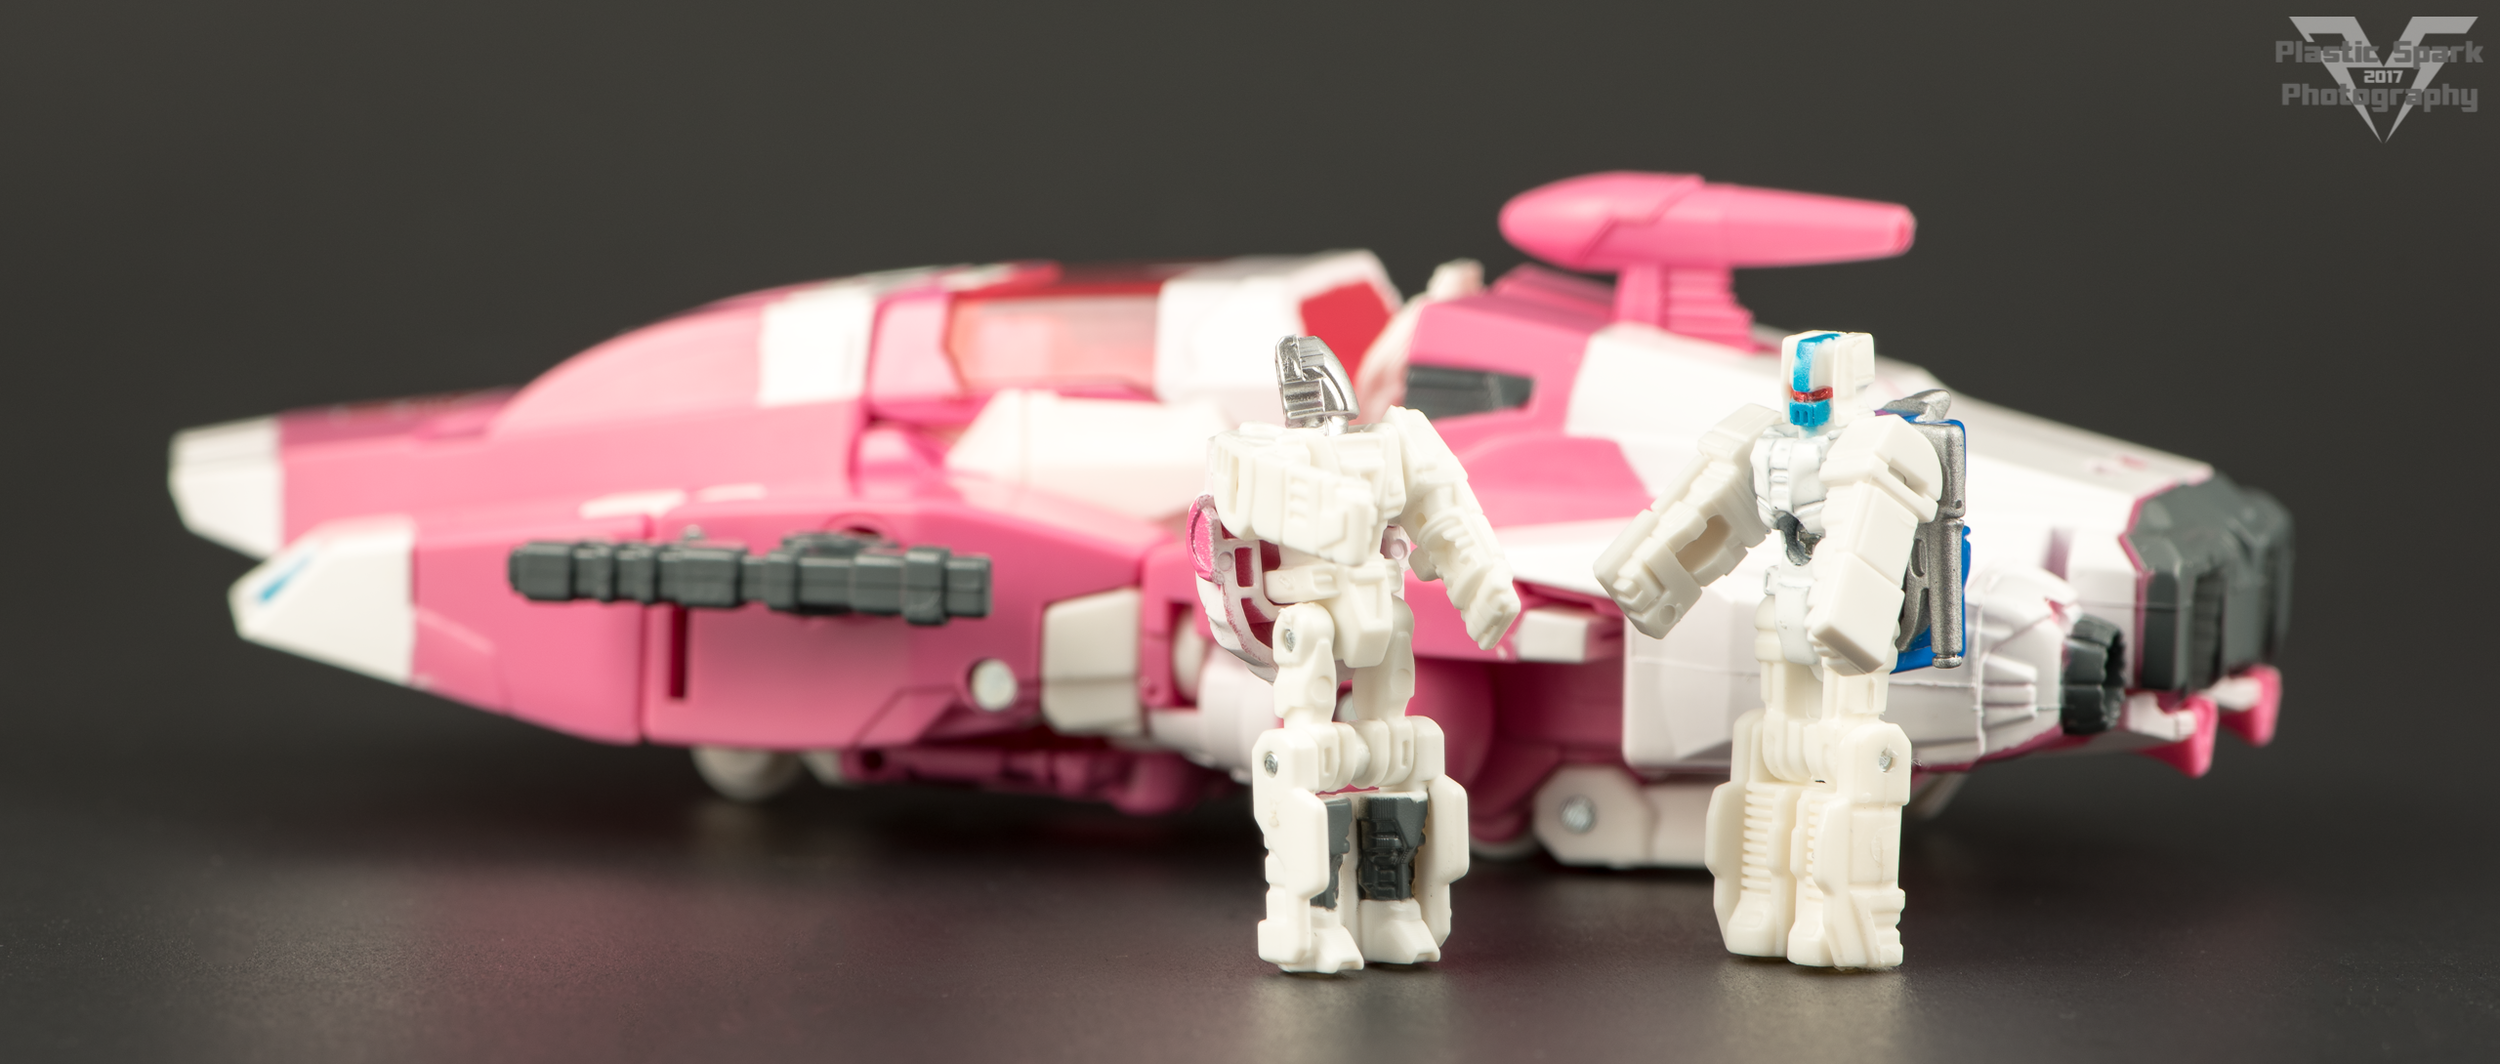 Hascon-Arcee-(3-of-7).png